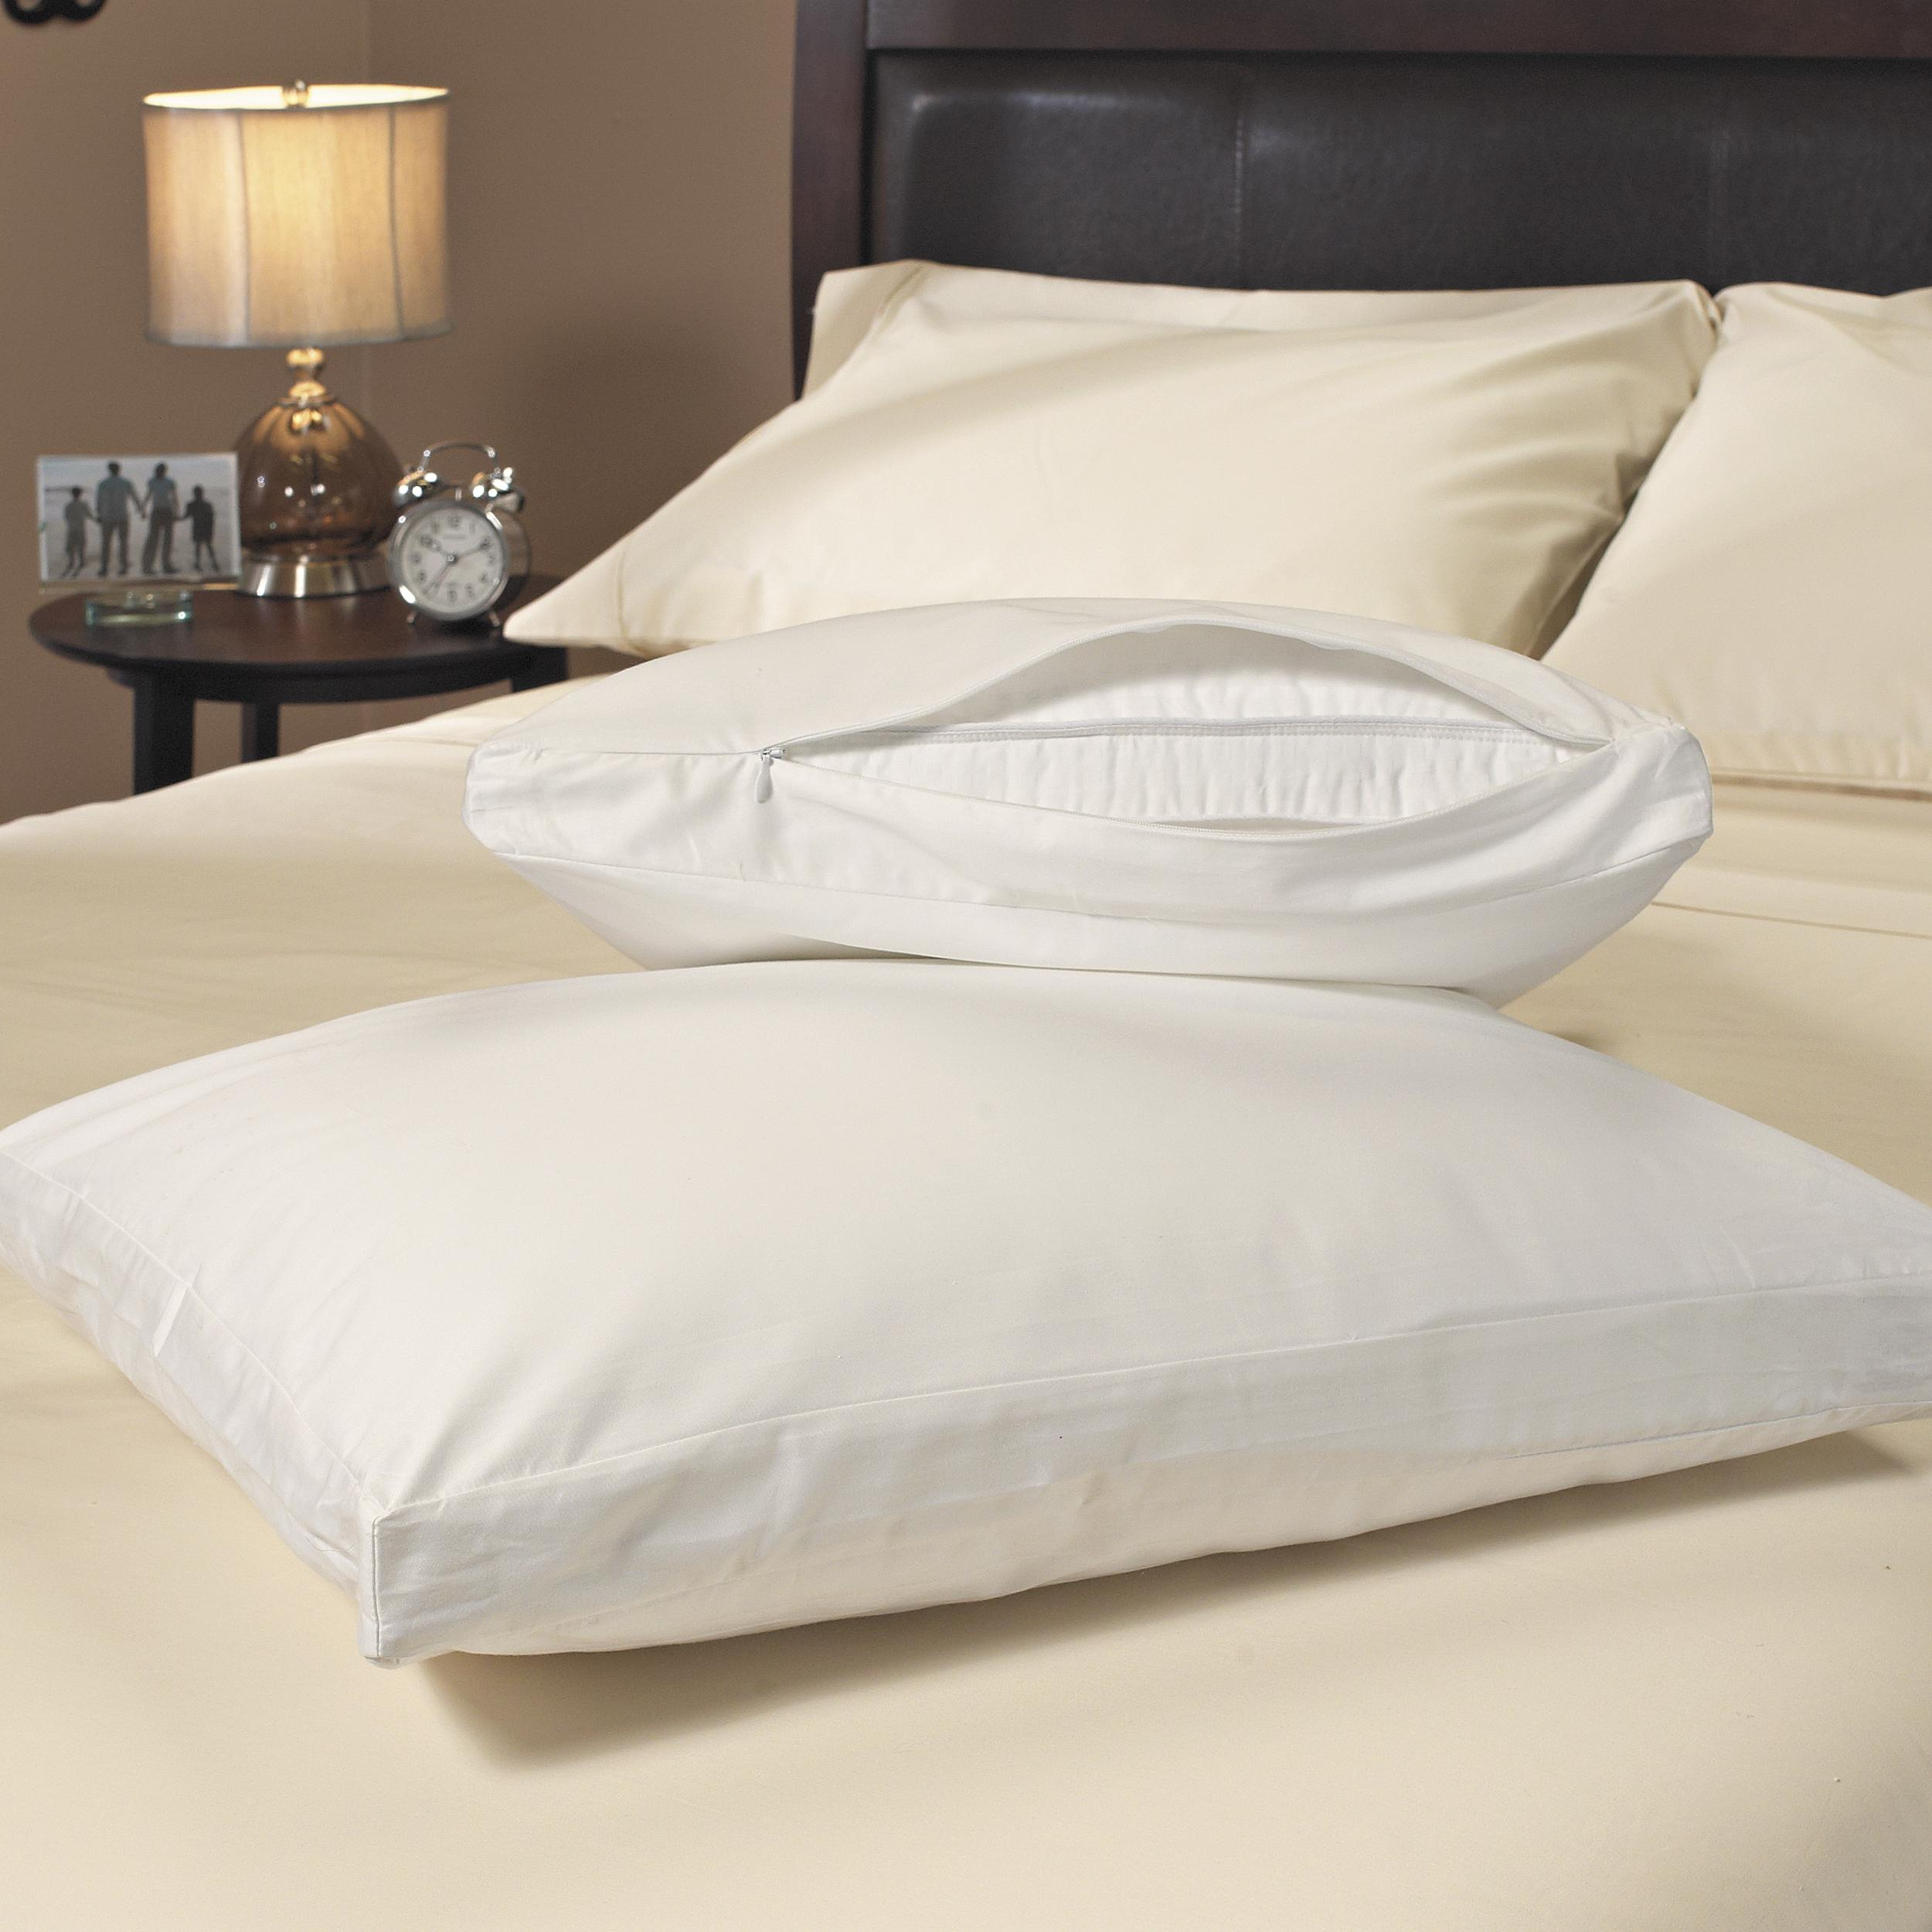 Stain Resistant 300 Thread Count Gusseted Zip Pillow Protector (Set of 2)